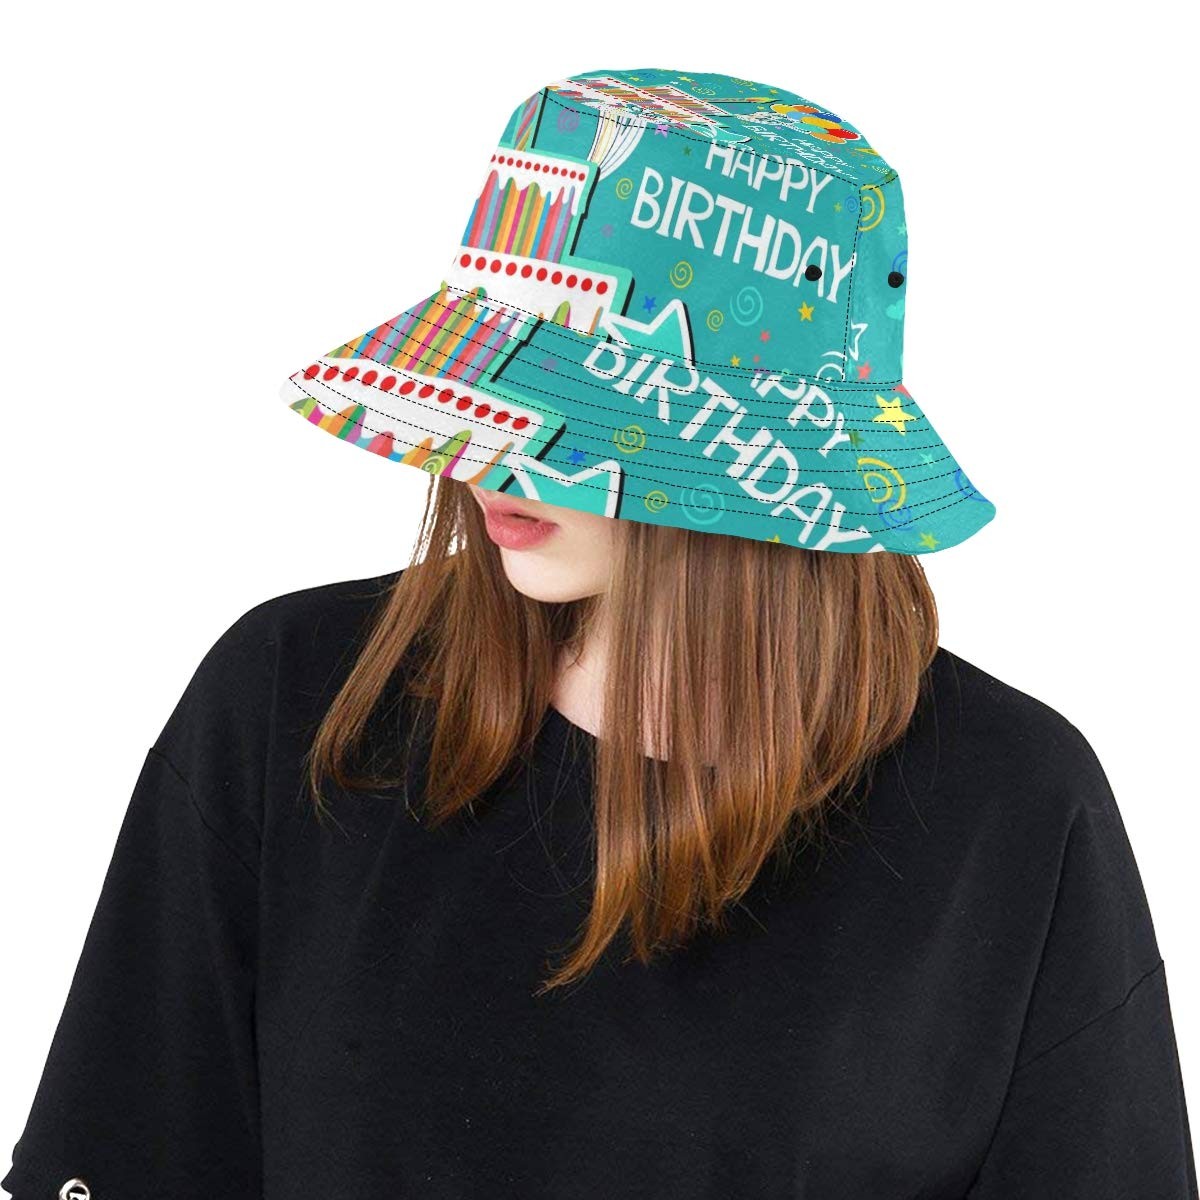 Happy Birthday Cute Funny Card New Summer Unisex Cotton Fashion Fishing Sun Bucket Hats for Kid Teens Women and Men with Customize Top Packable Fisherman Cap for Outdoor Travel